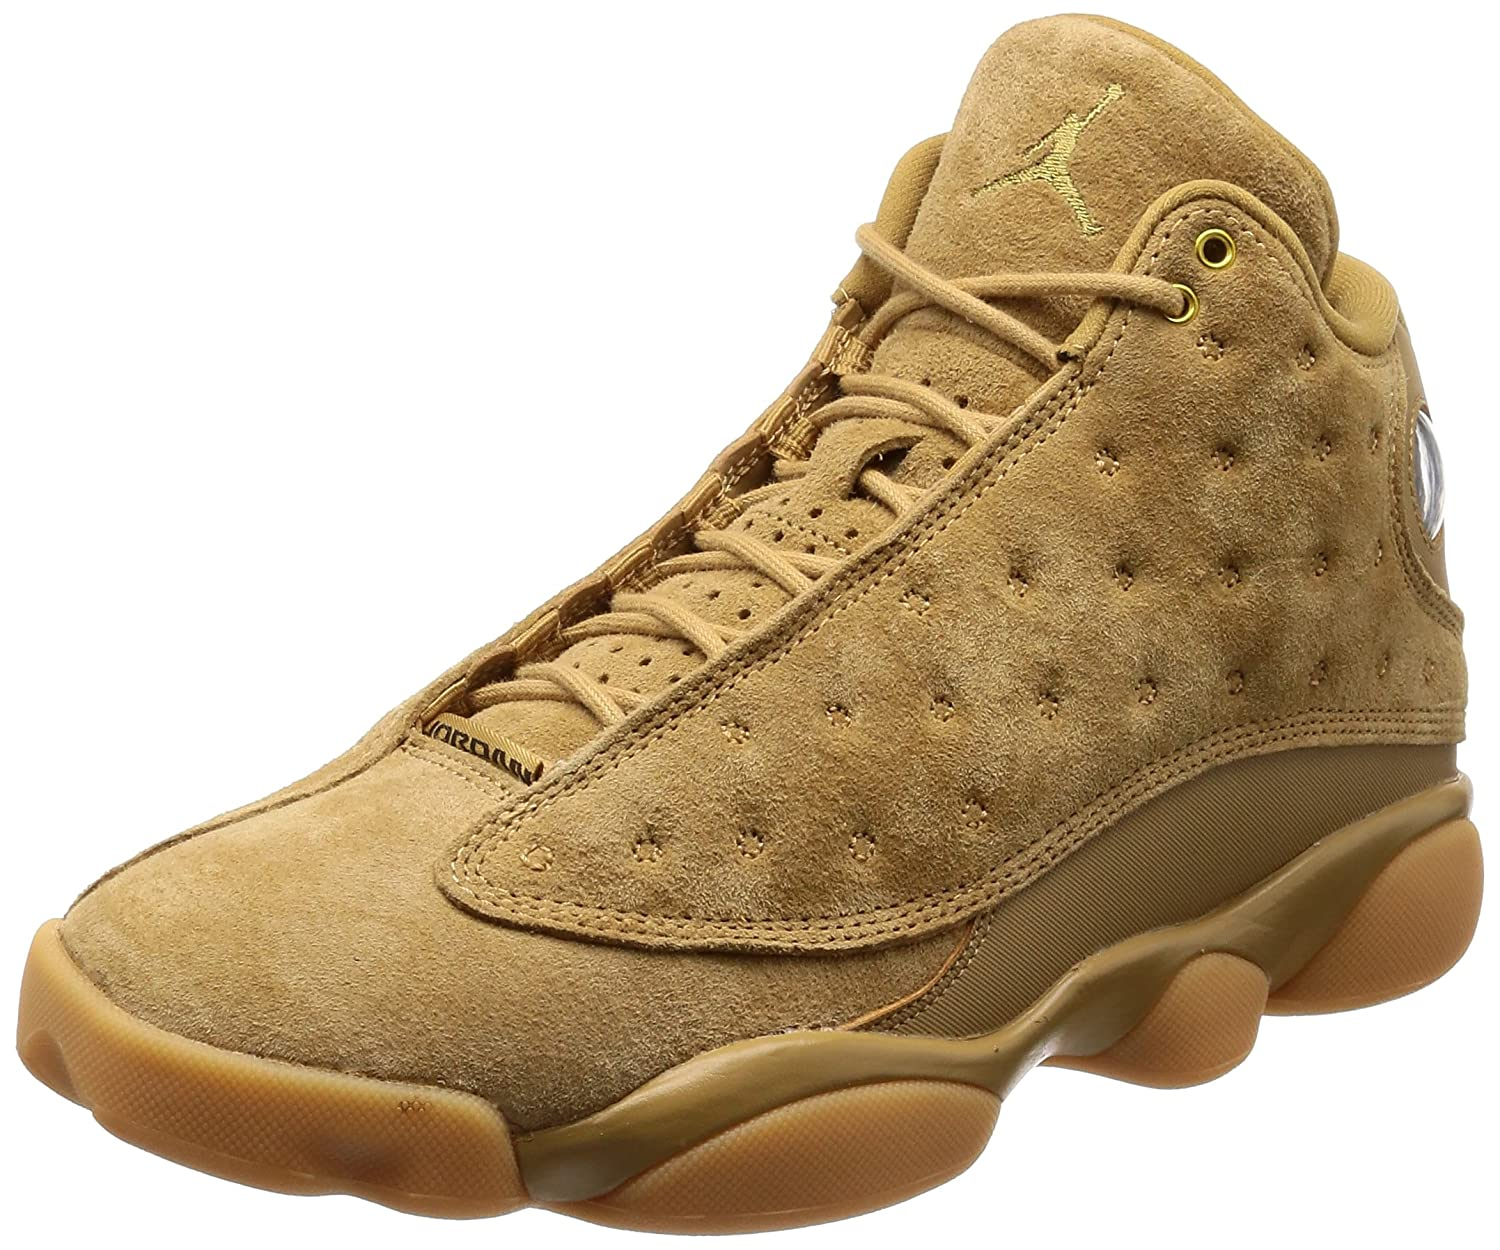 separation shoes c1d83 8e420 AIR Jordan 13 Retro 'Wheat '2017'' - 414571-705